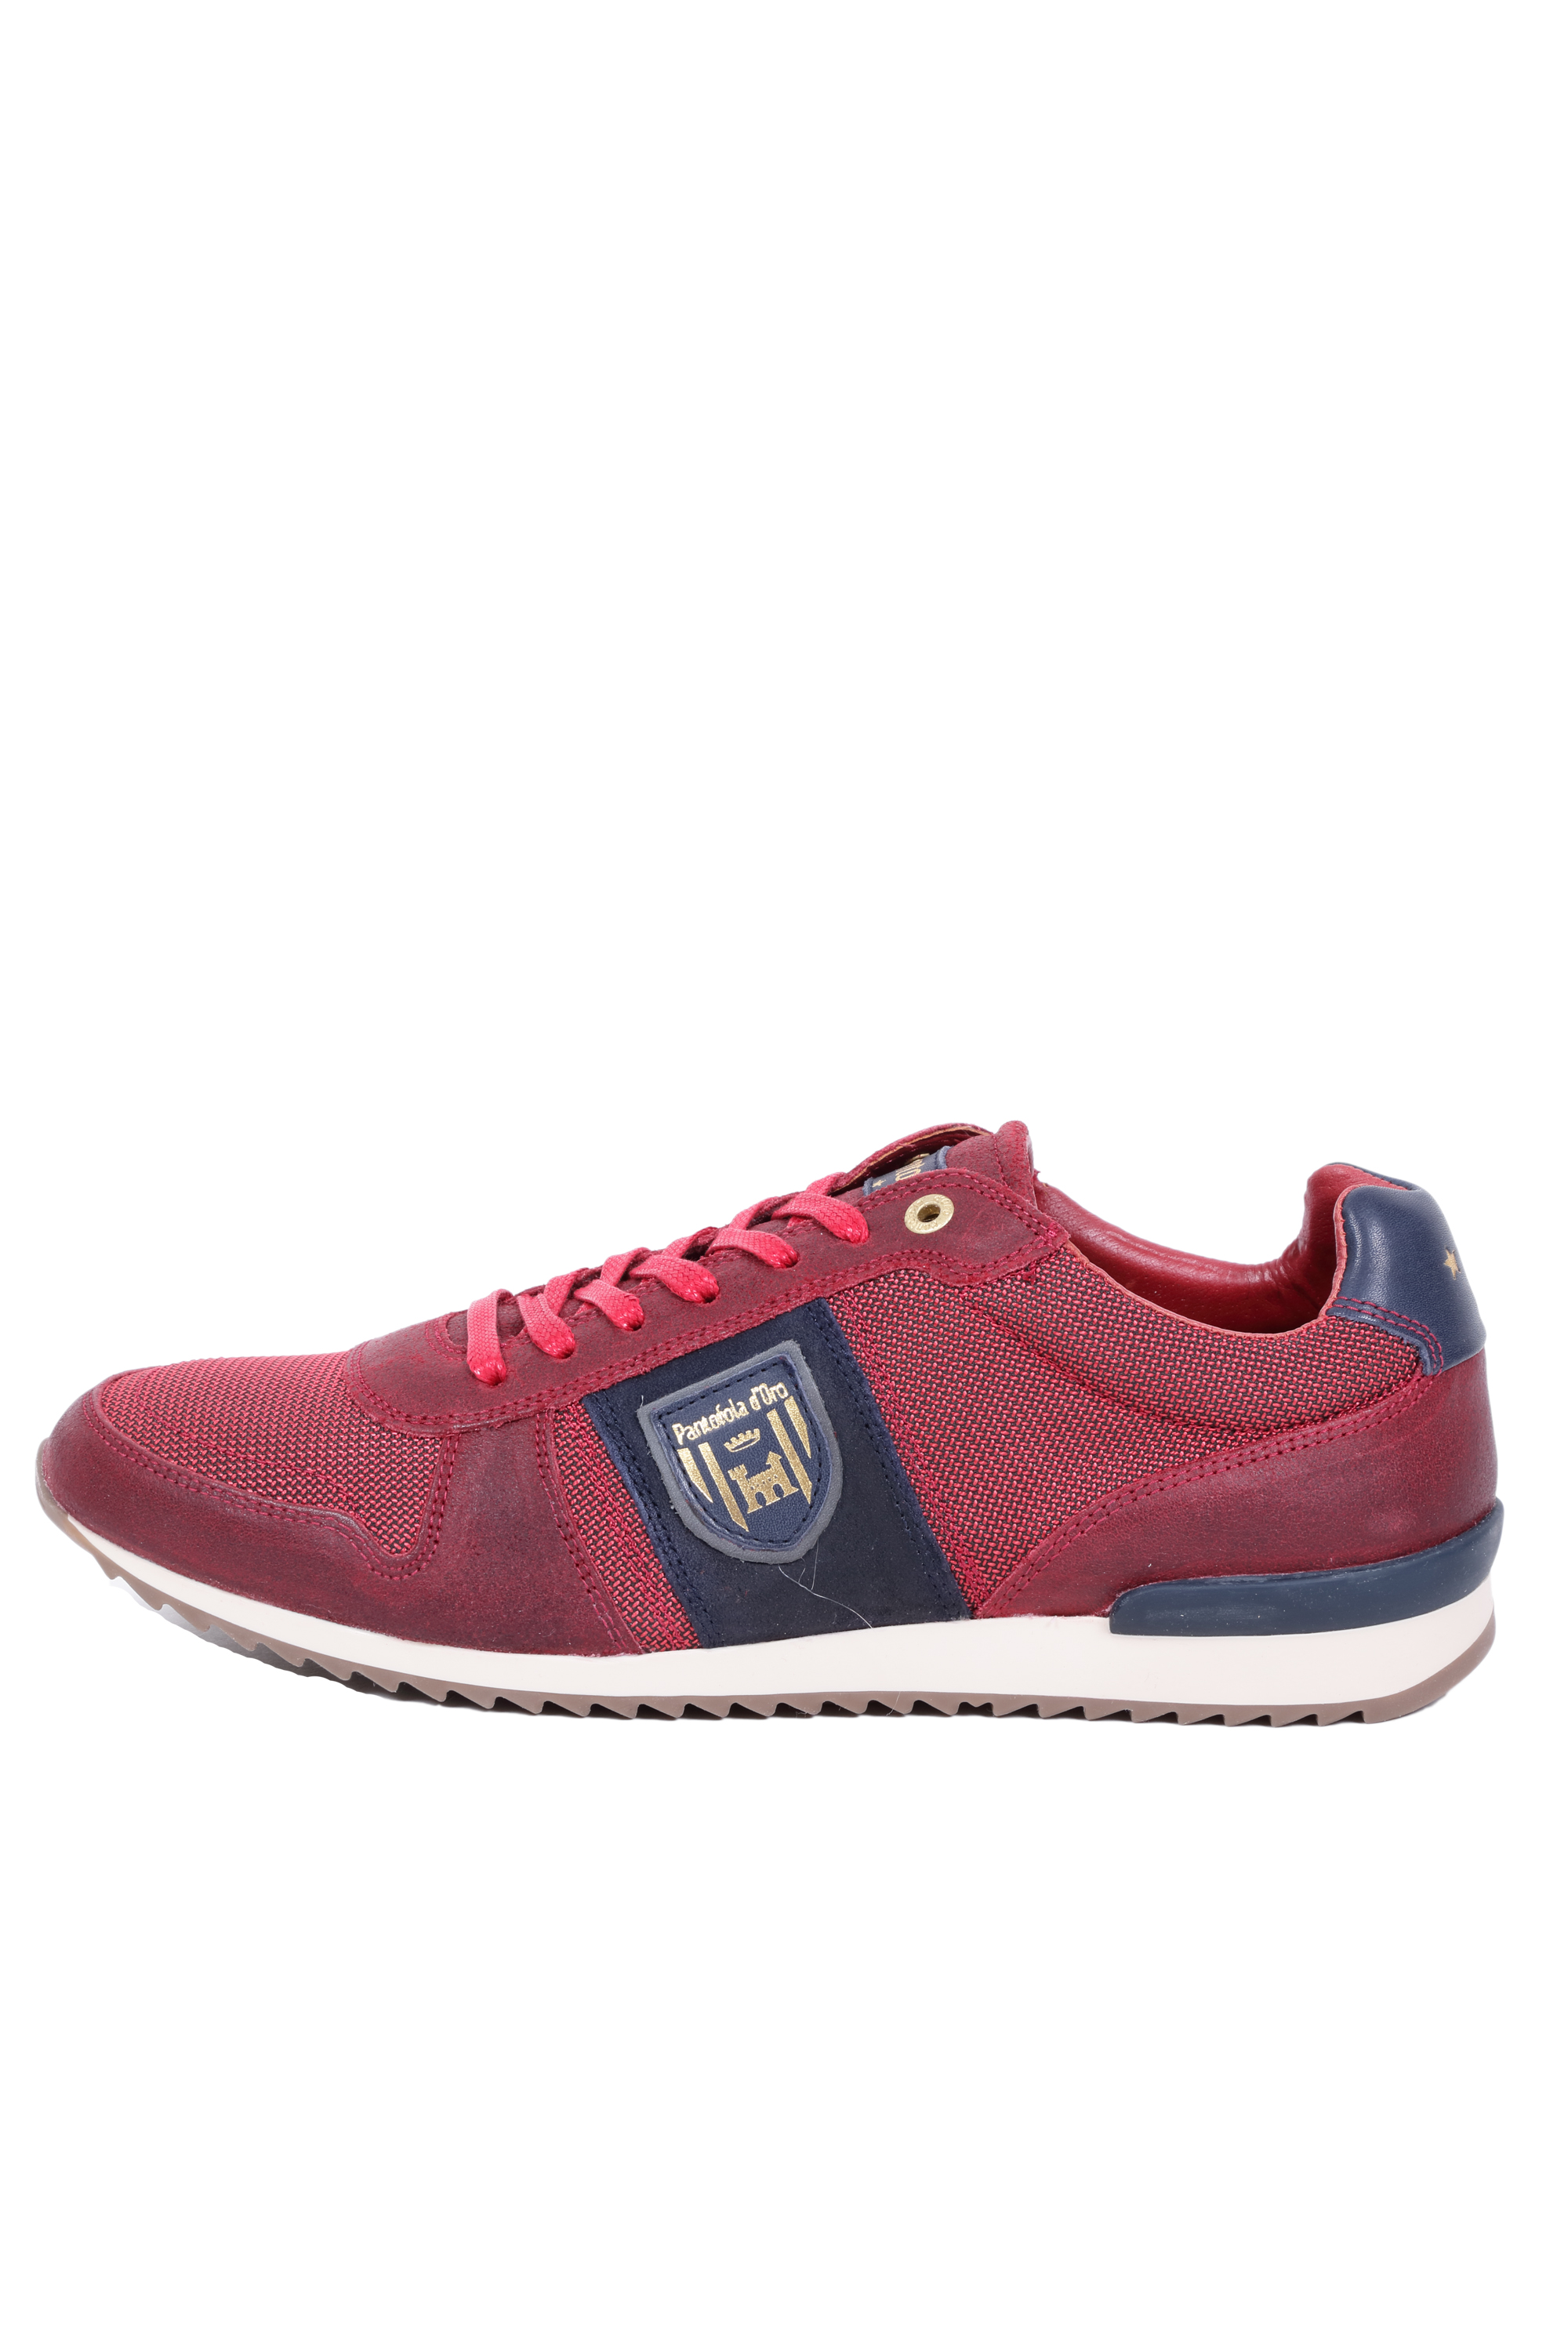 Pantofola d´Oro Sneaker Umito NB Uomo low - racing red 41